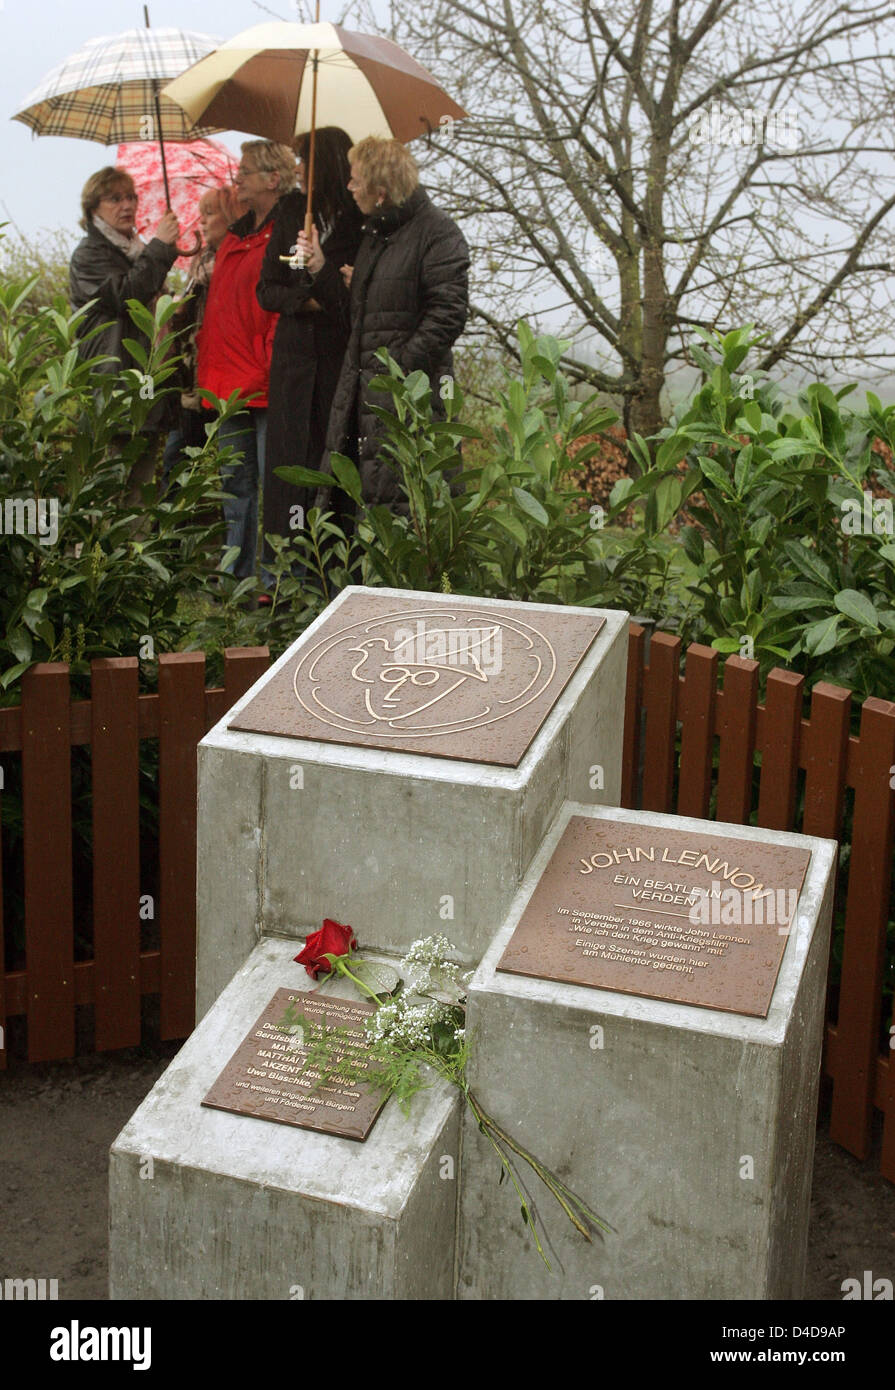 The Photo Shows The John Lennon Memorial After Its Unveiling In Stock Photo Alamy